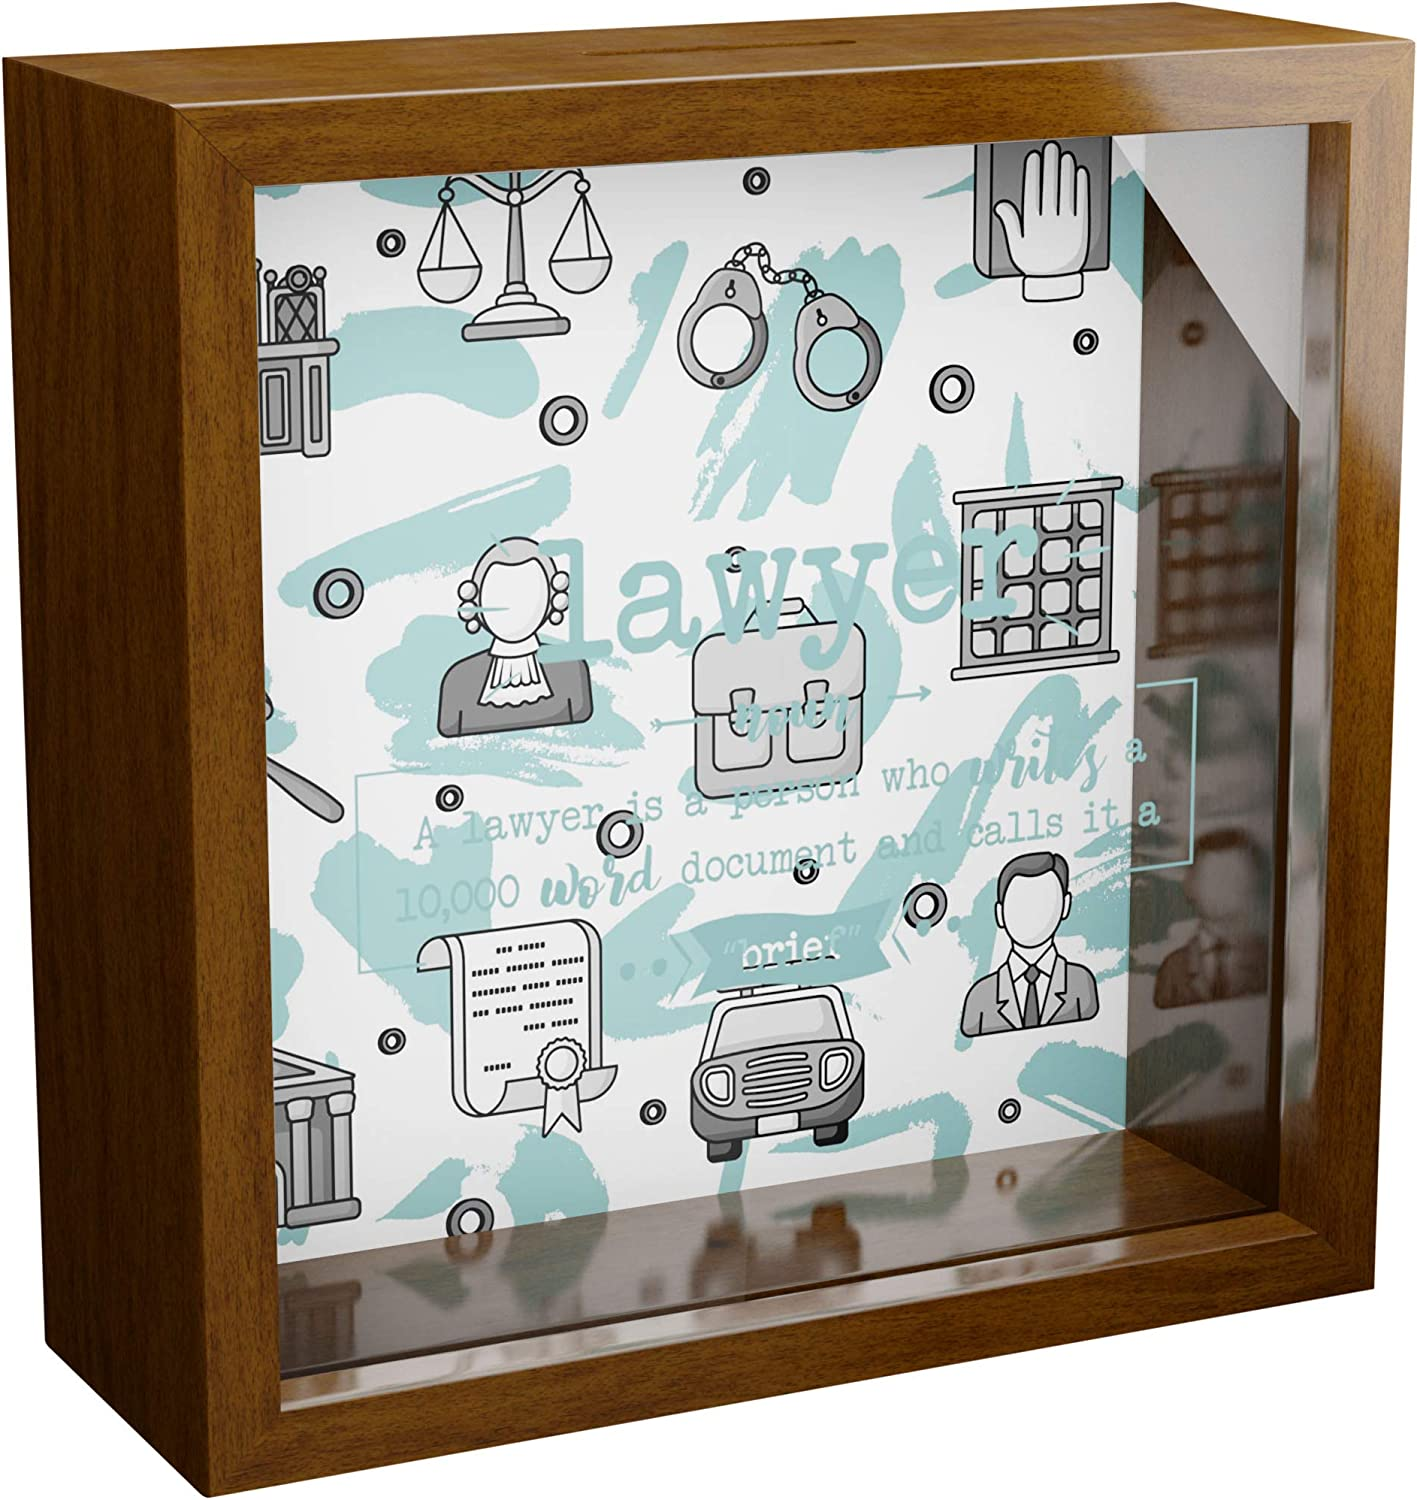 Gifts for Lawyers | 6x6x2 Wooden Shadow Box with Glass Front | Wood Keepsake Frame for Attorney Men & Women | Future Lawyer Gift for Law Student |Home or Office Wall Decor